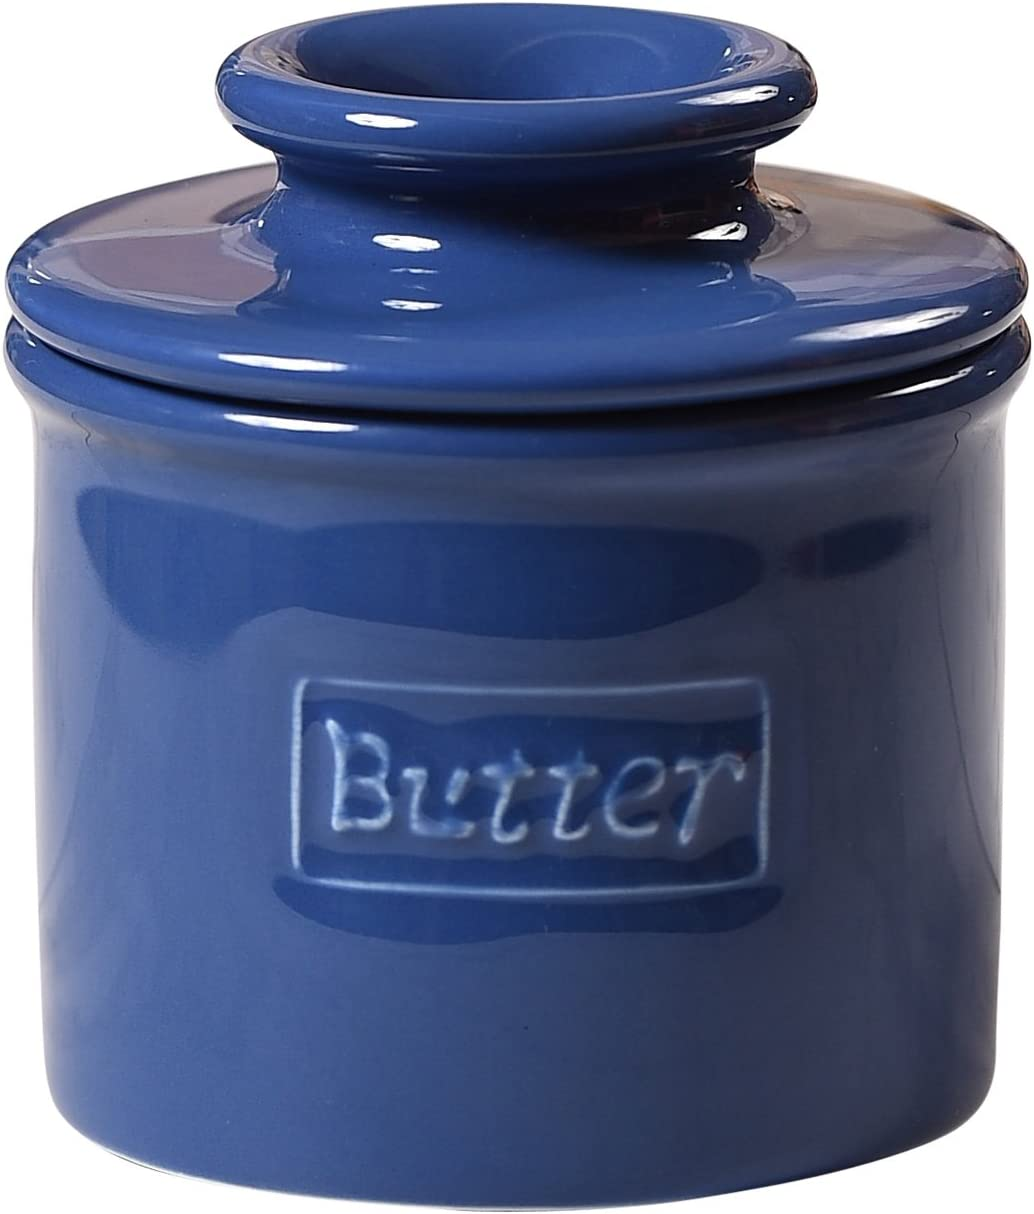 Butter Bell - The Original Butter Bell Crock by L. Tremain, French Ceramic Butter Dish, Café Retro Collection, Royal Blue, Glossy Finish